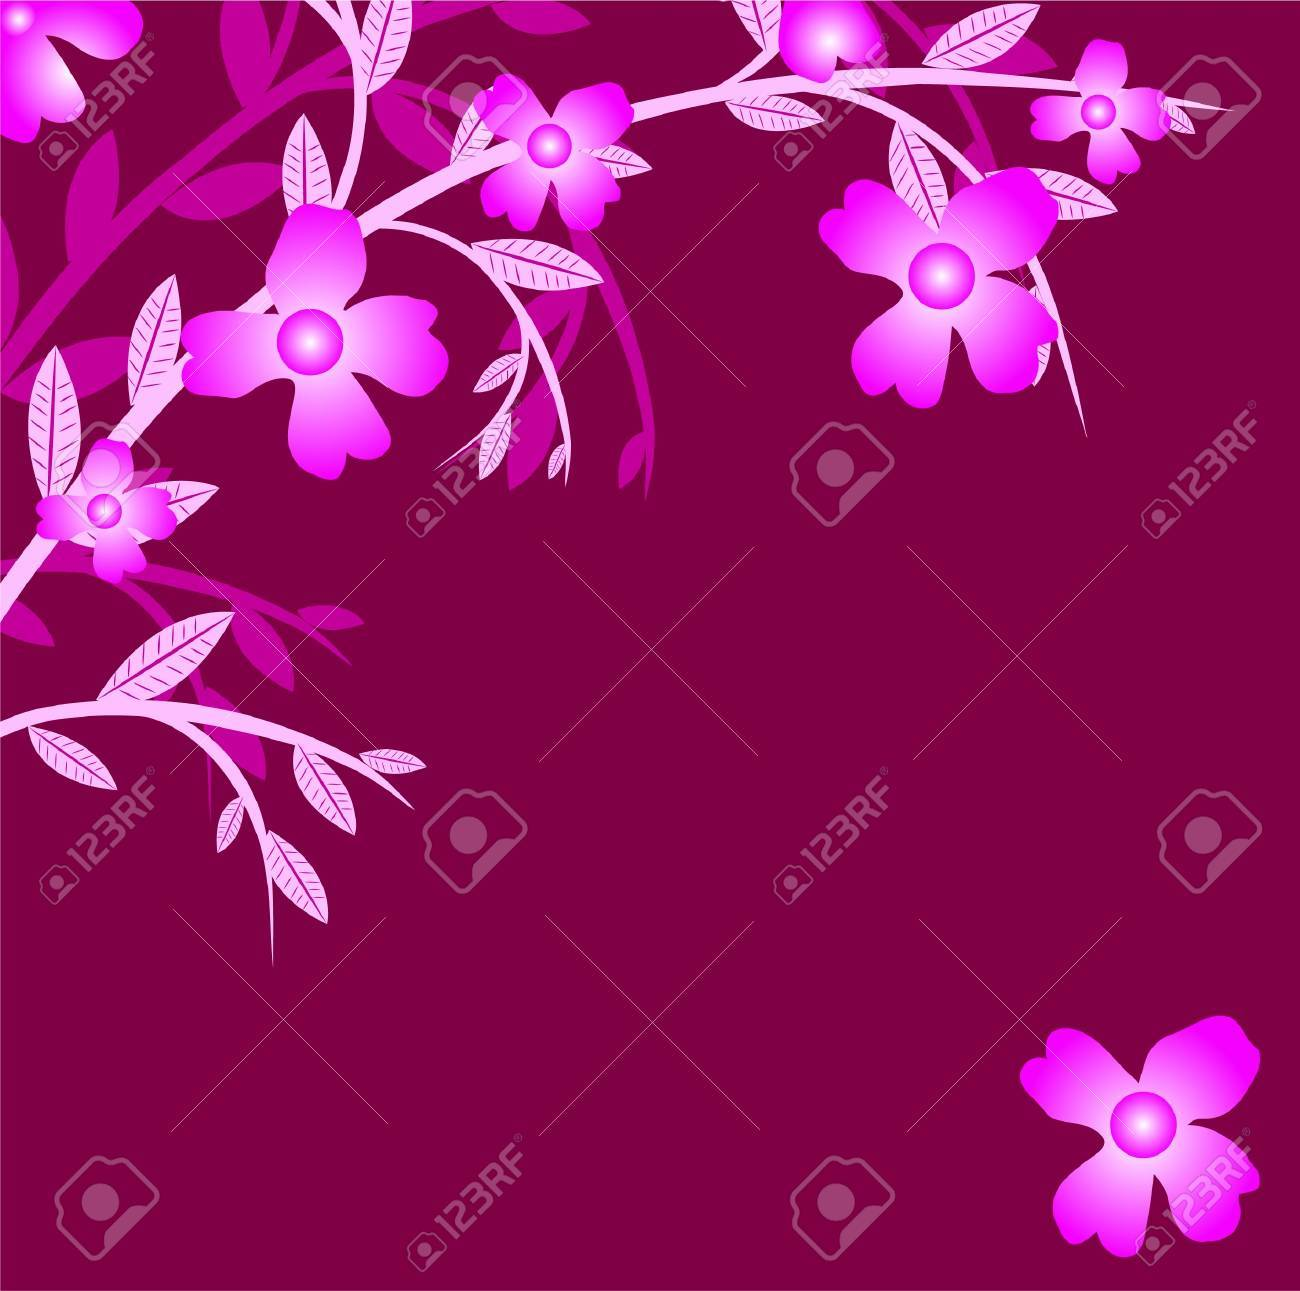 Branch of a plant, the Japanese style, background Stock Vector - 17822920